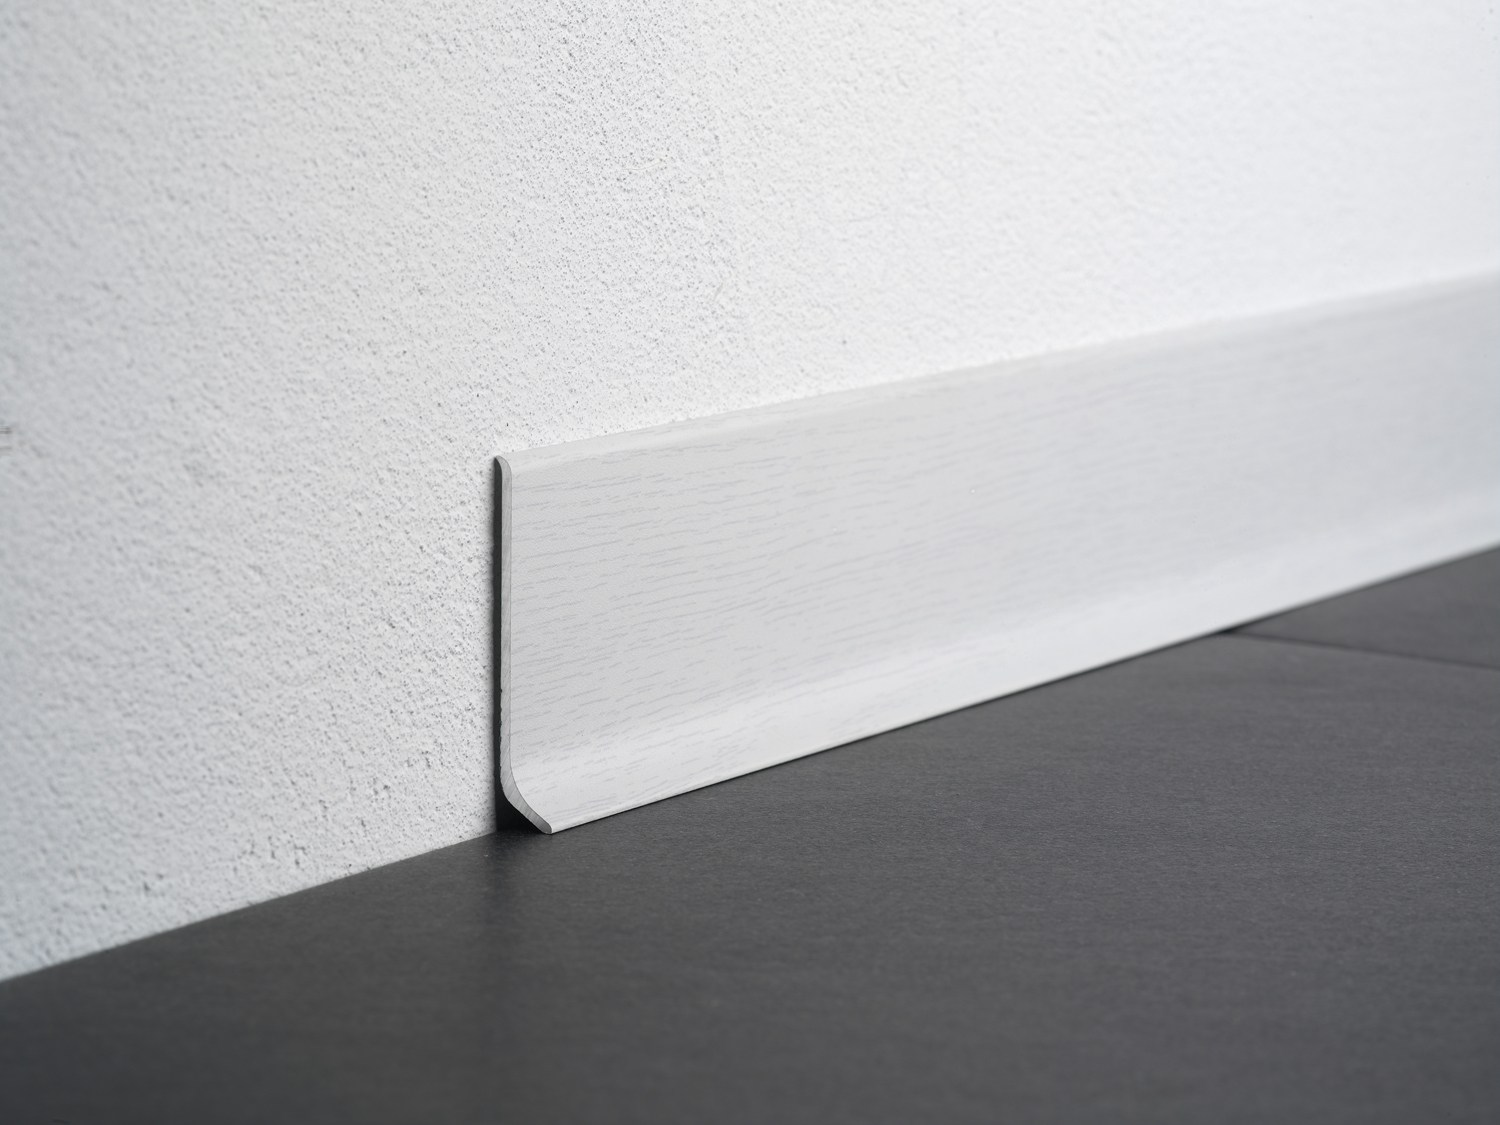 . Skirting boards  flooring profiles and joints   Archiproducts